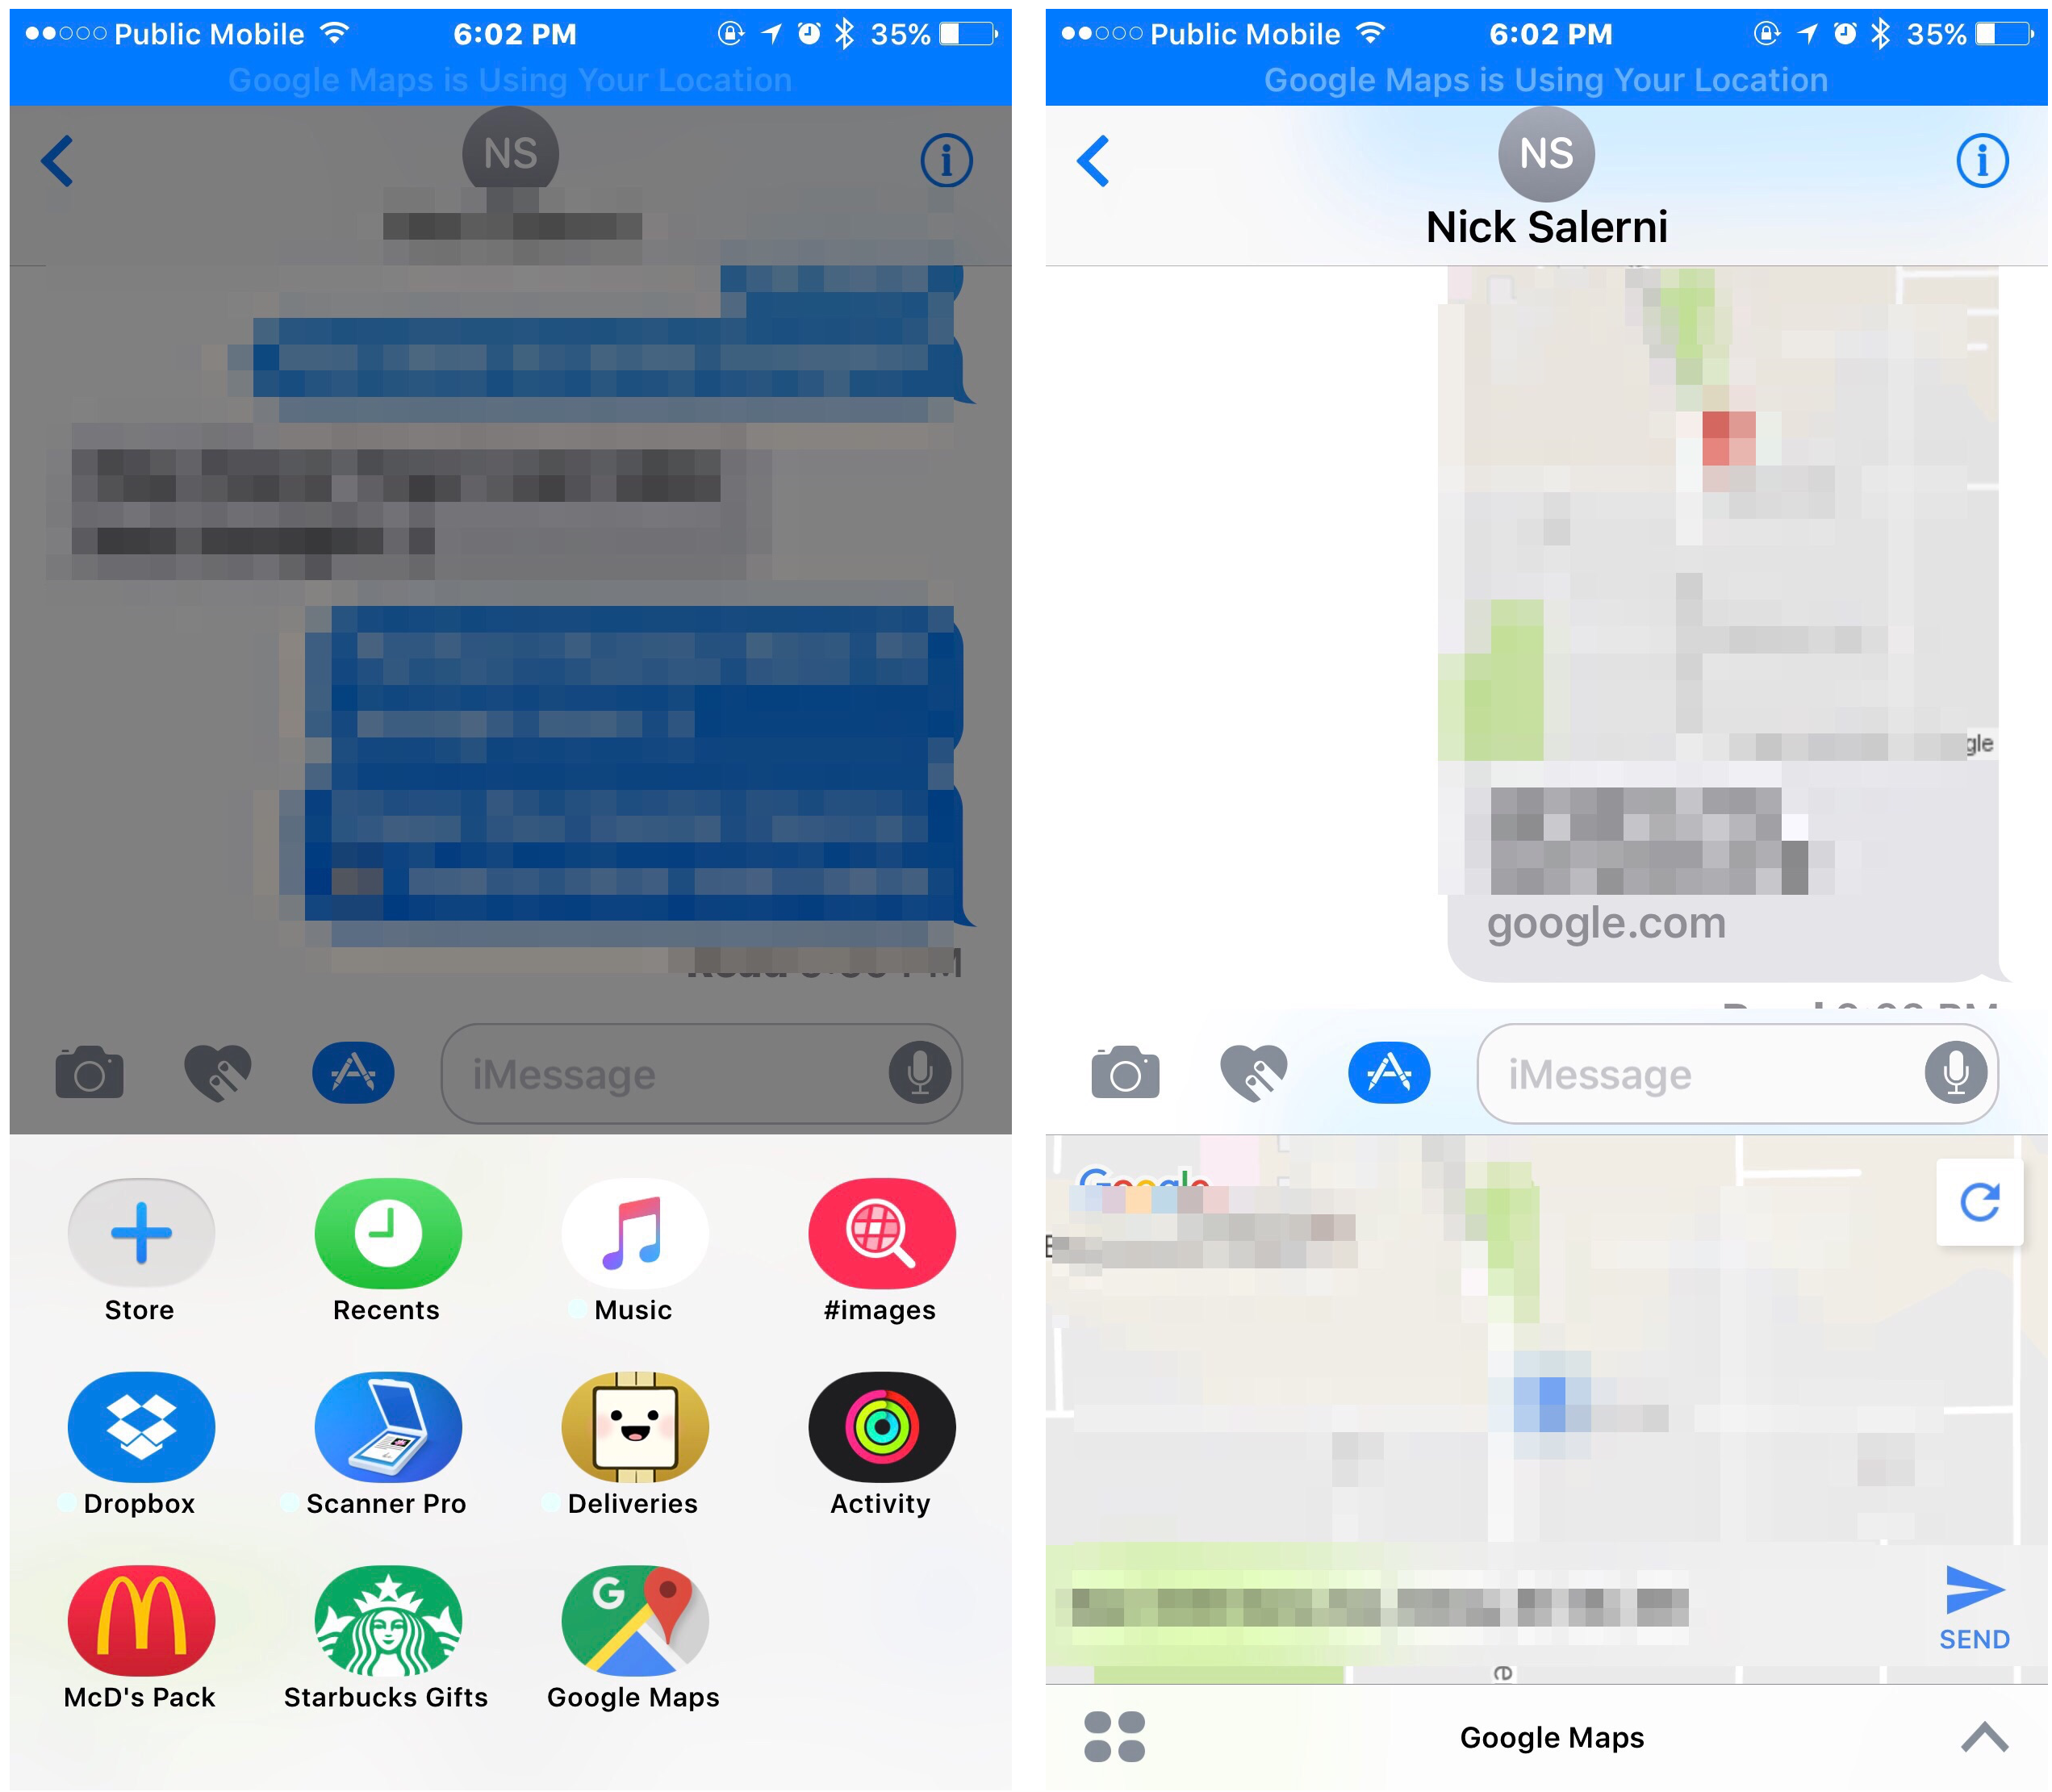 Google Maps for iOS Updated with Lock Screen Directions Widget